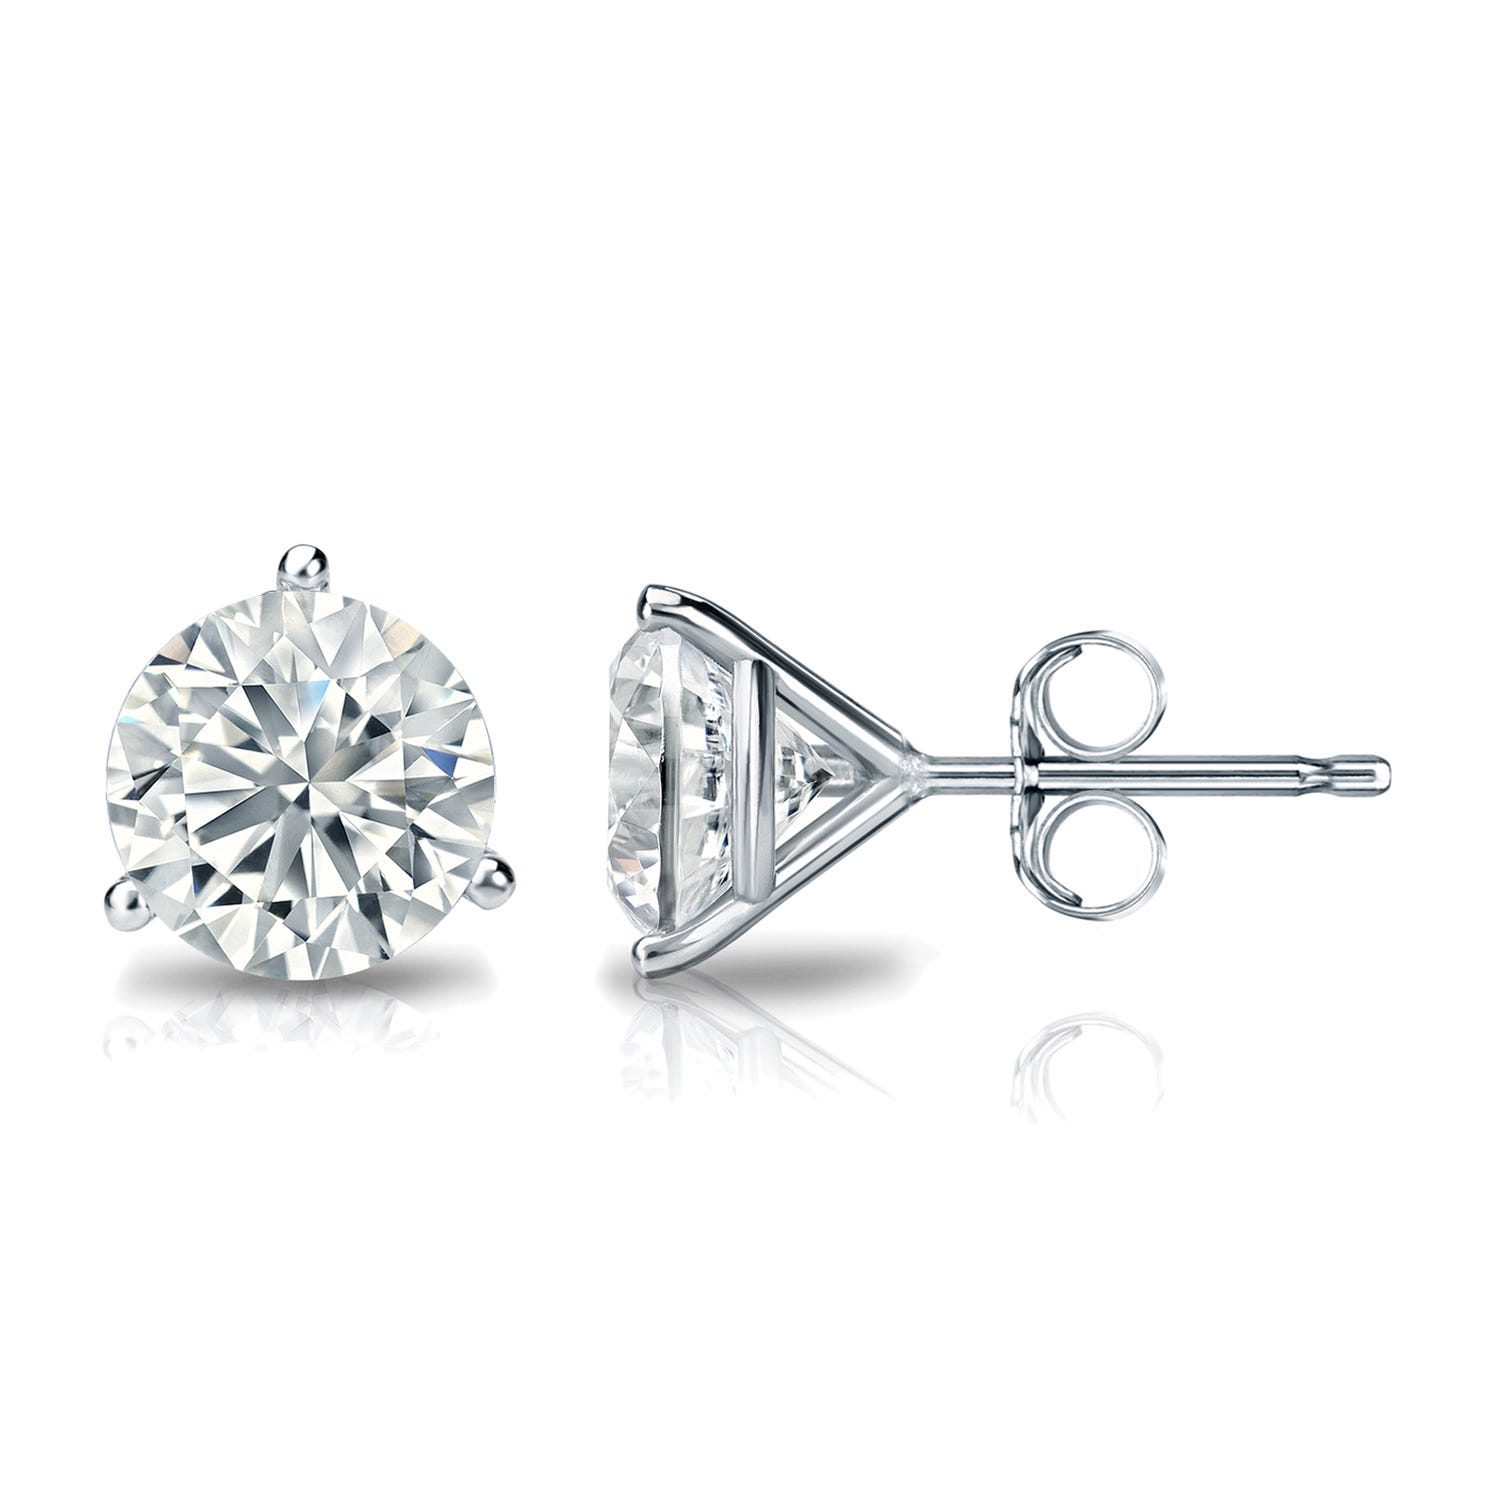 1-1/2 CTTW Round Diamond Solitaire Stud Earrings IJ SI1 in Platinum IGI Certified 3-Prong Setting